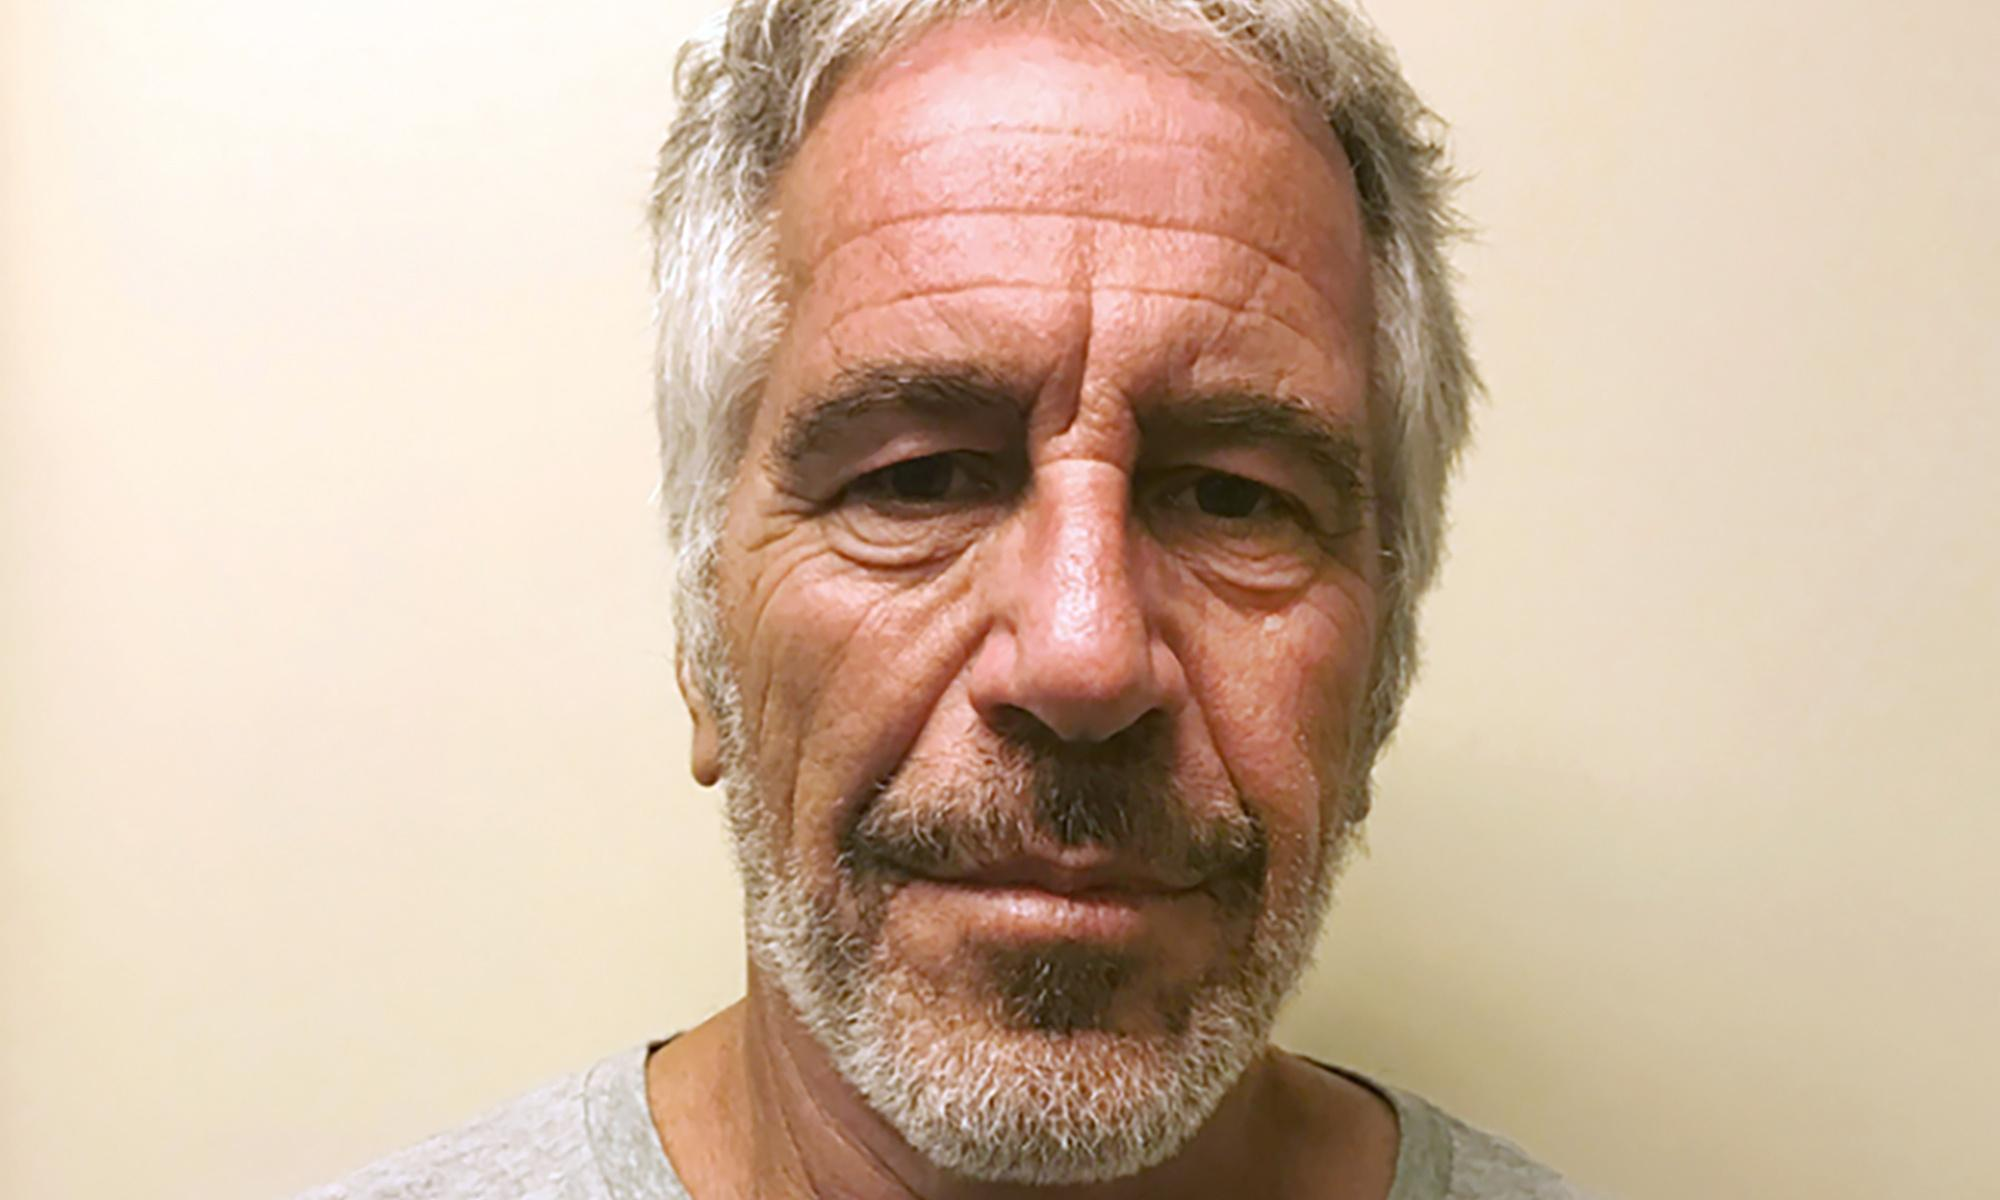 Medical examiner says Jeffrey Epstein's death was a suicide